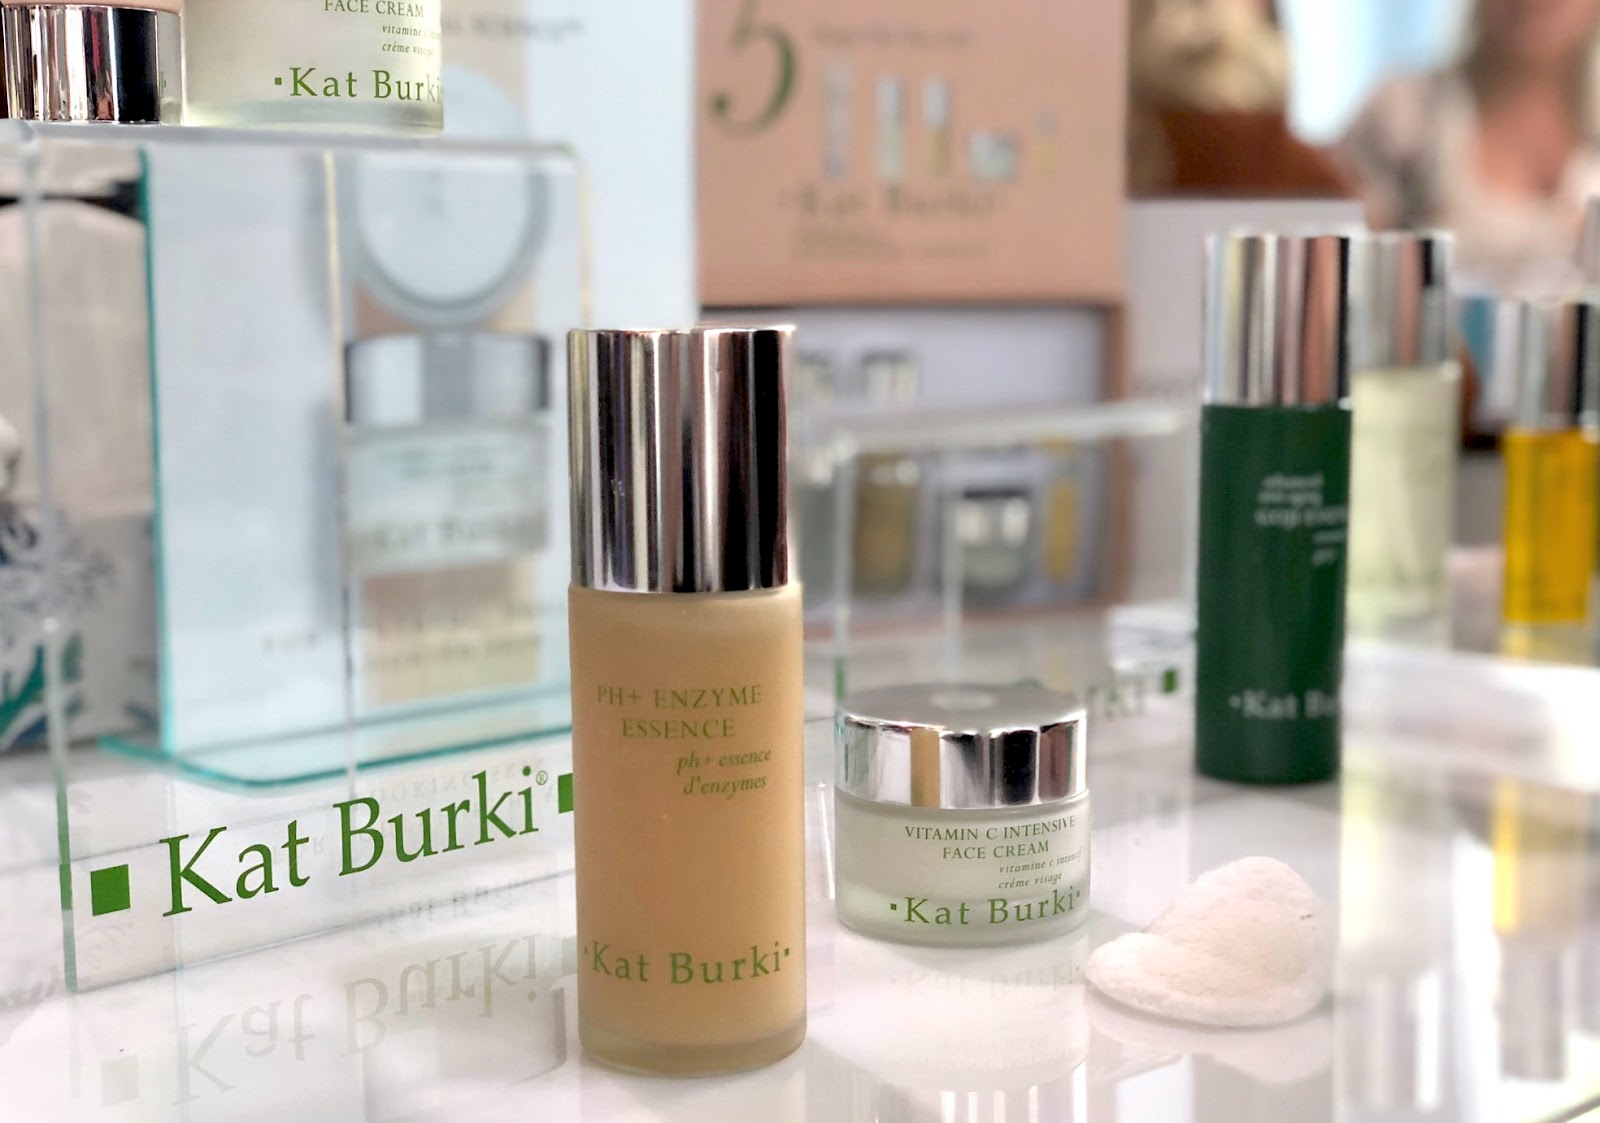 Kat Burki PH+ Enzyme Essence